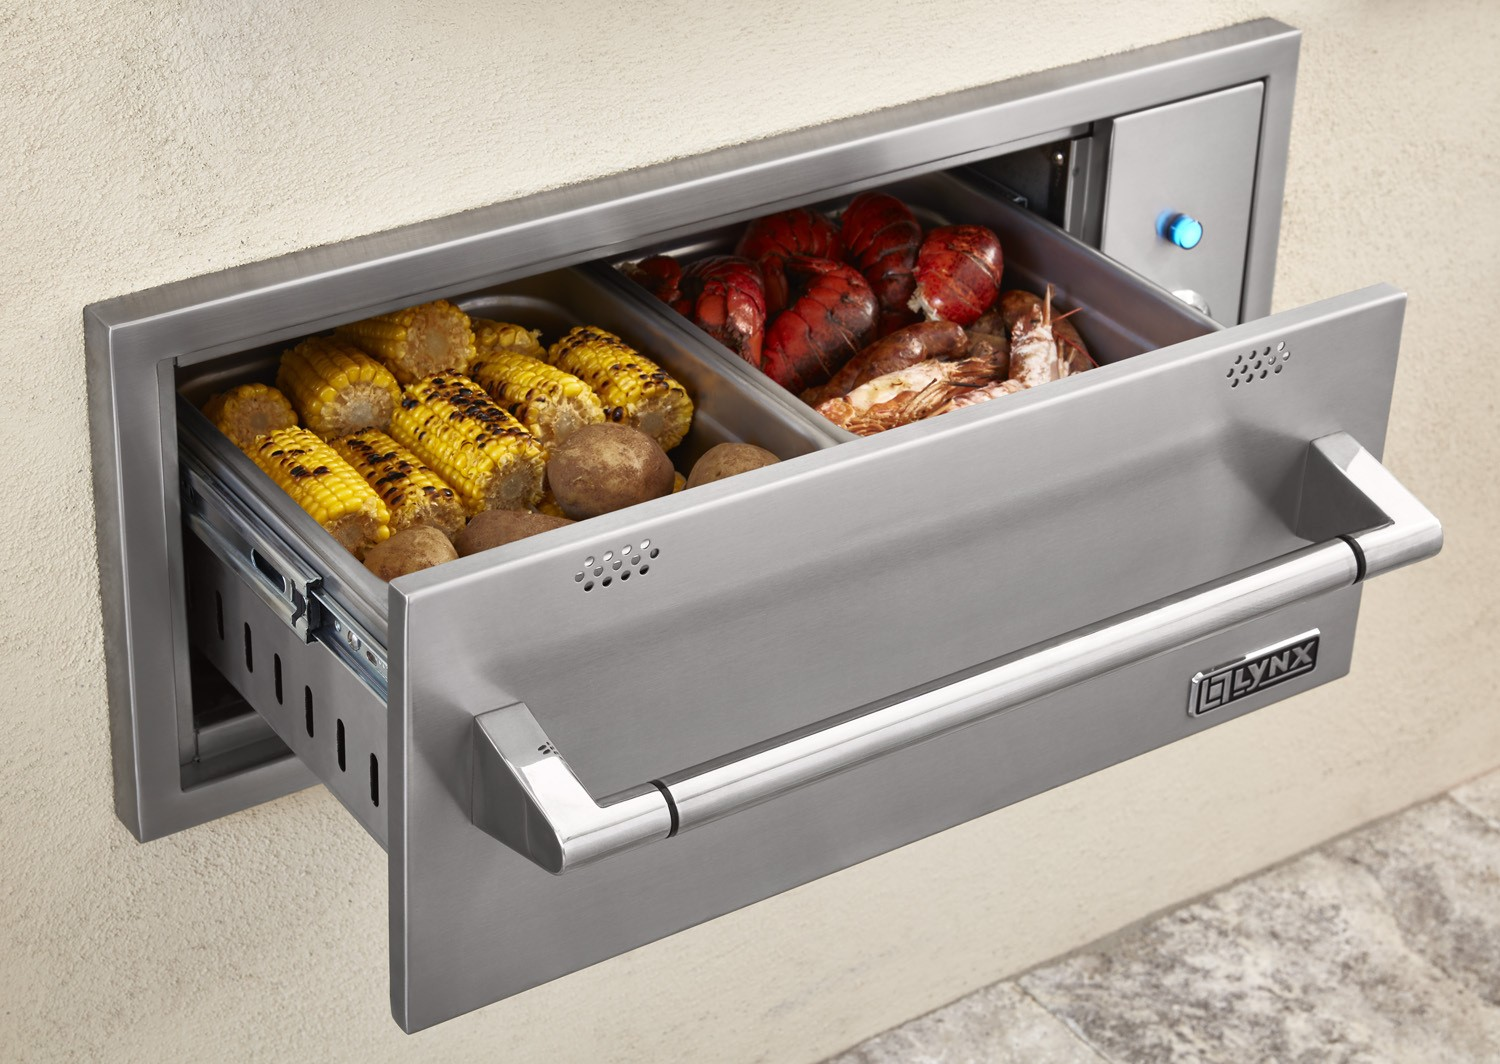 Lynx L30wd1 30 Built In Outdoor Warming Drawer